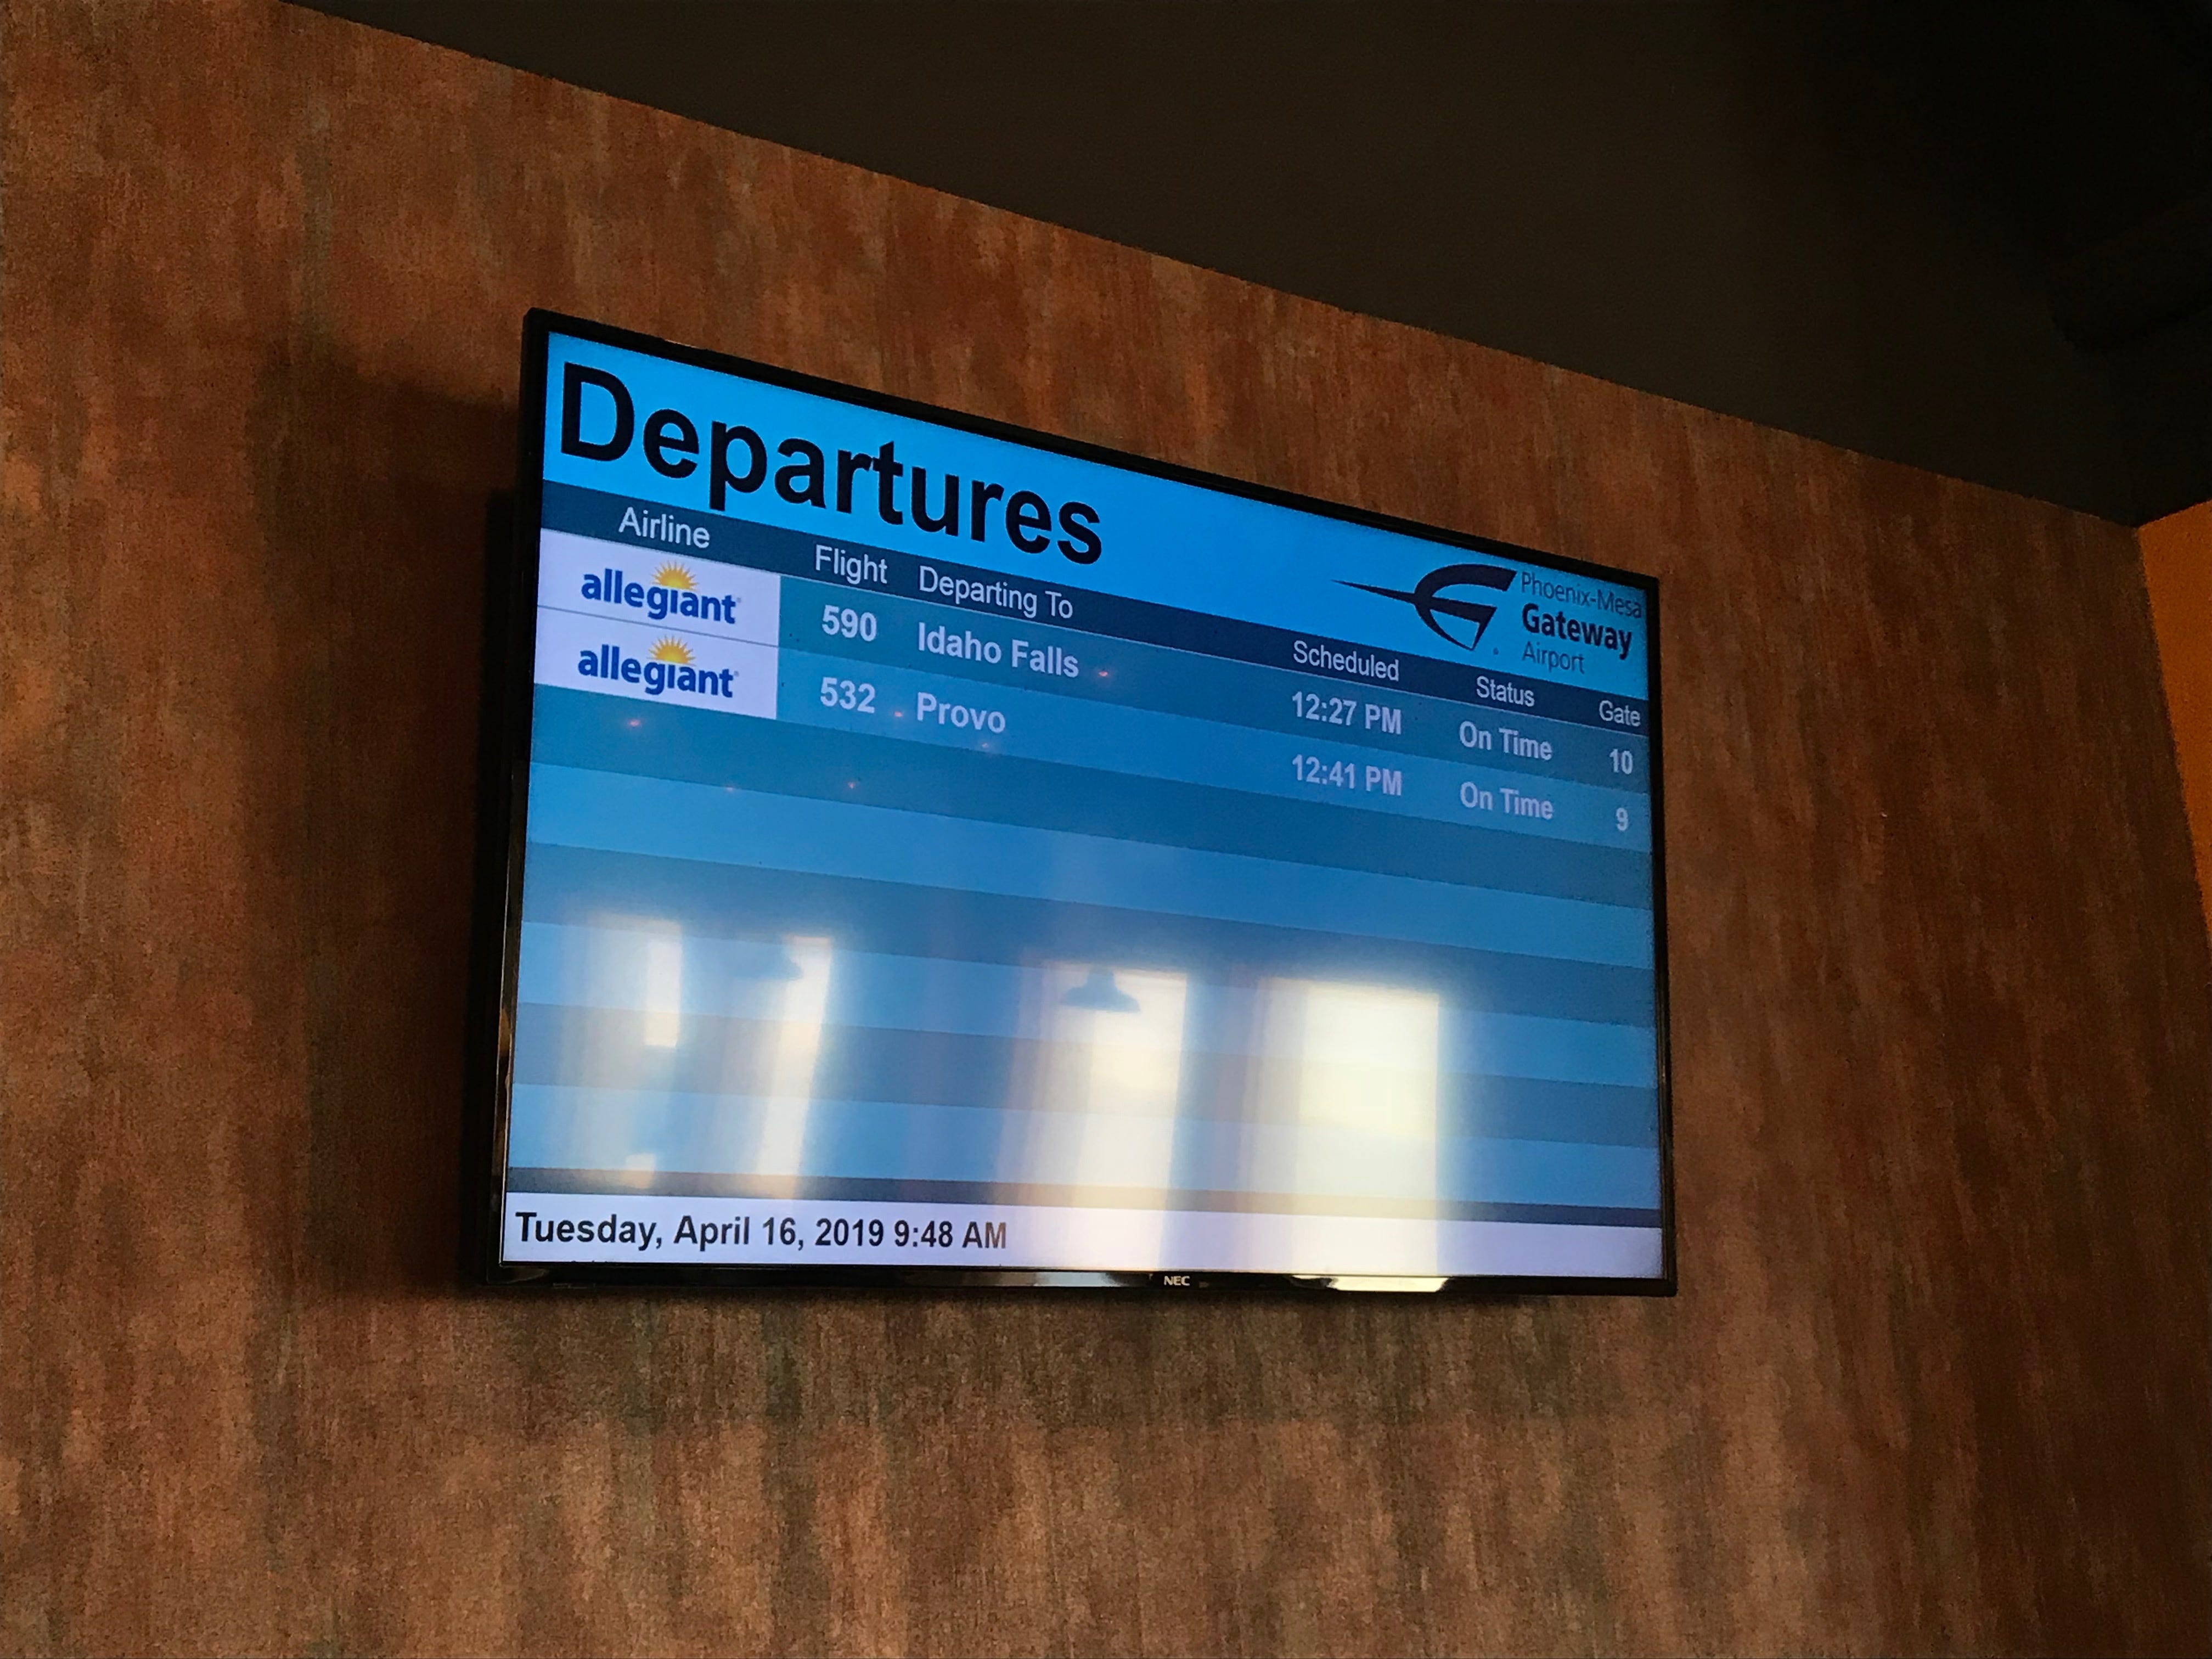 Phoenix-Mesa Gateway Airport installed a departures board inside Barrio Brewing Co. so passengers can check their flight status while relaxing at the brewery.